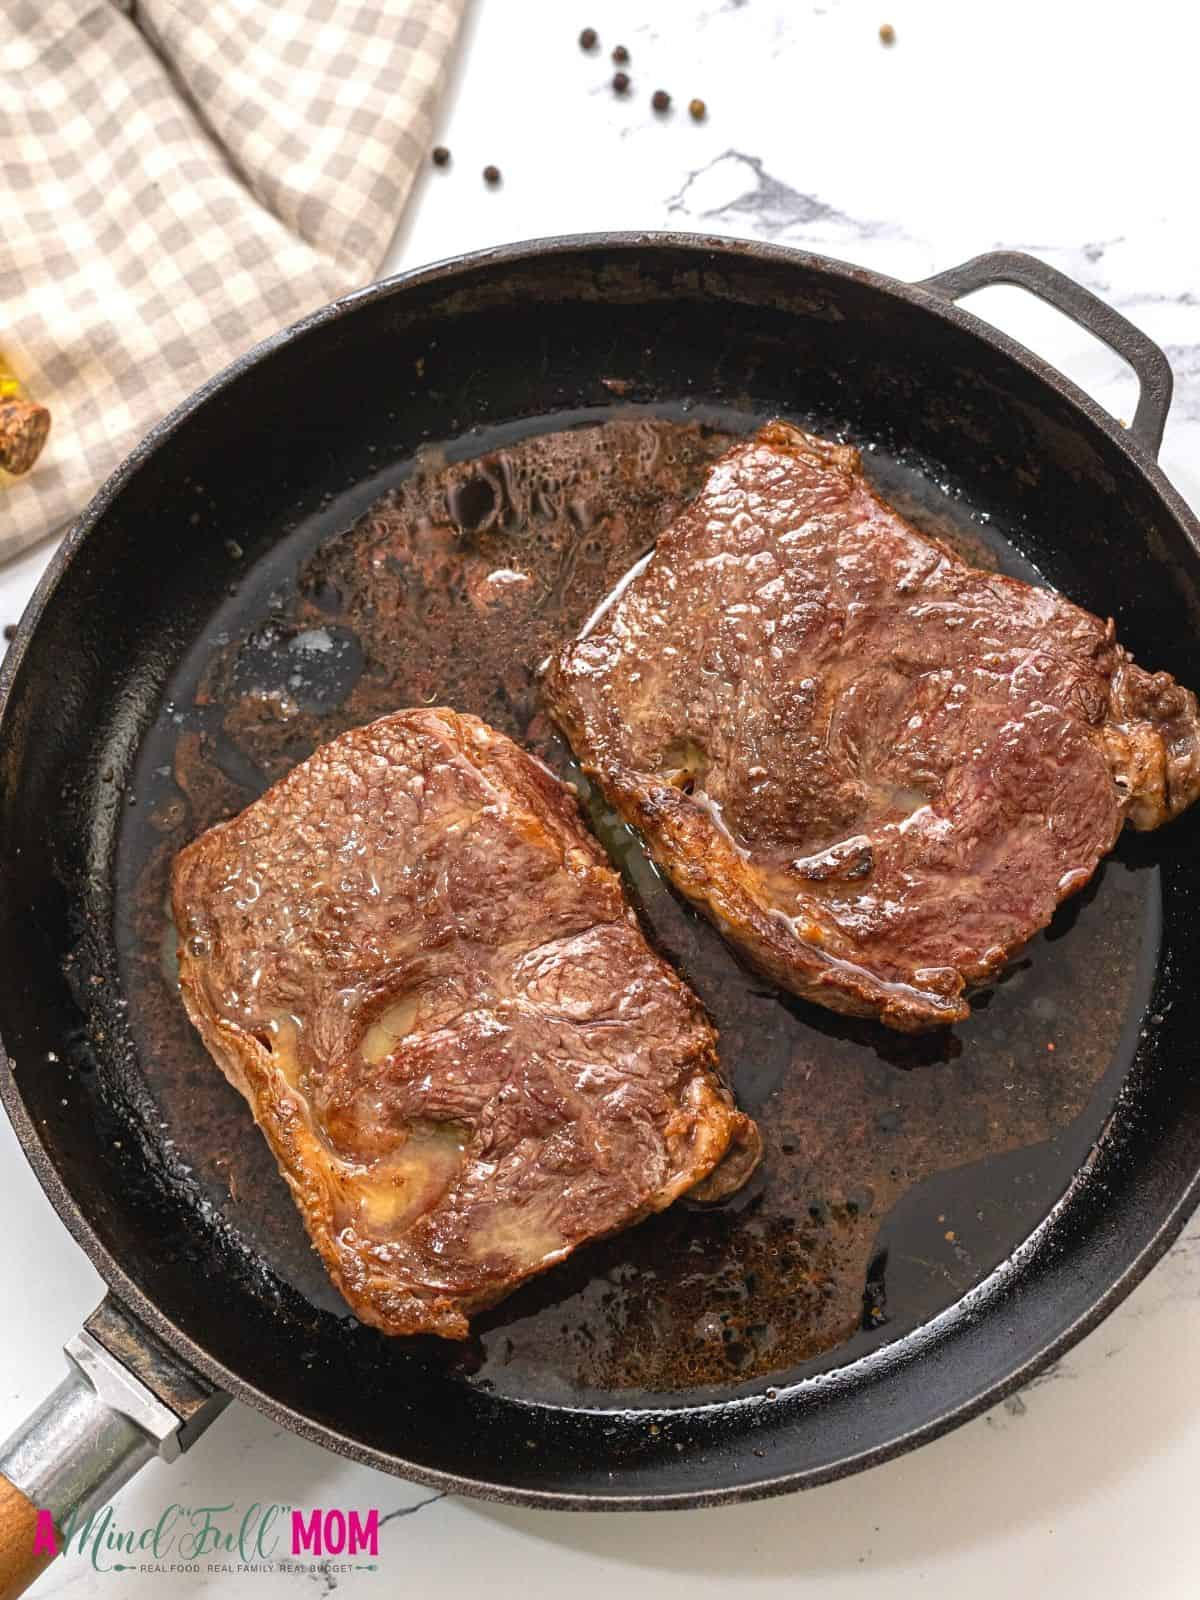 2 cooked ribeyes in cast iron skillet.